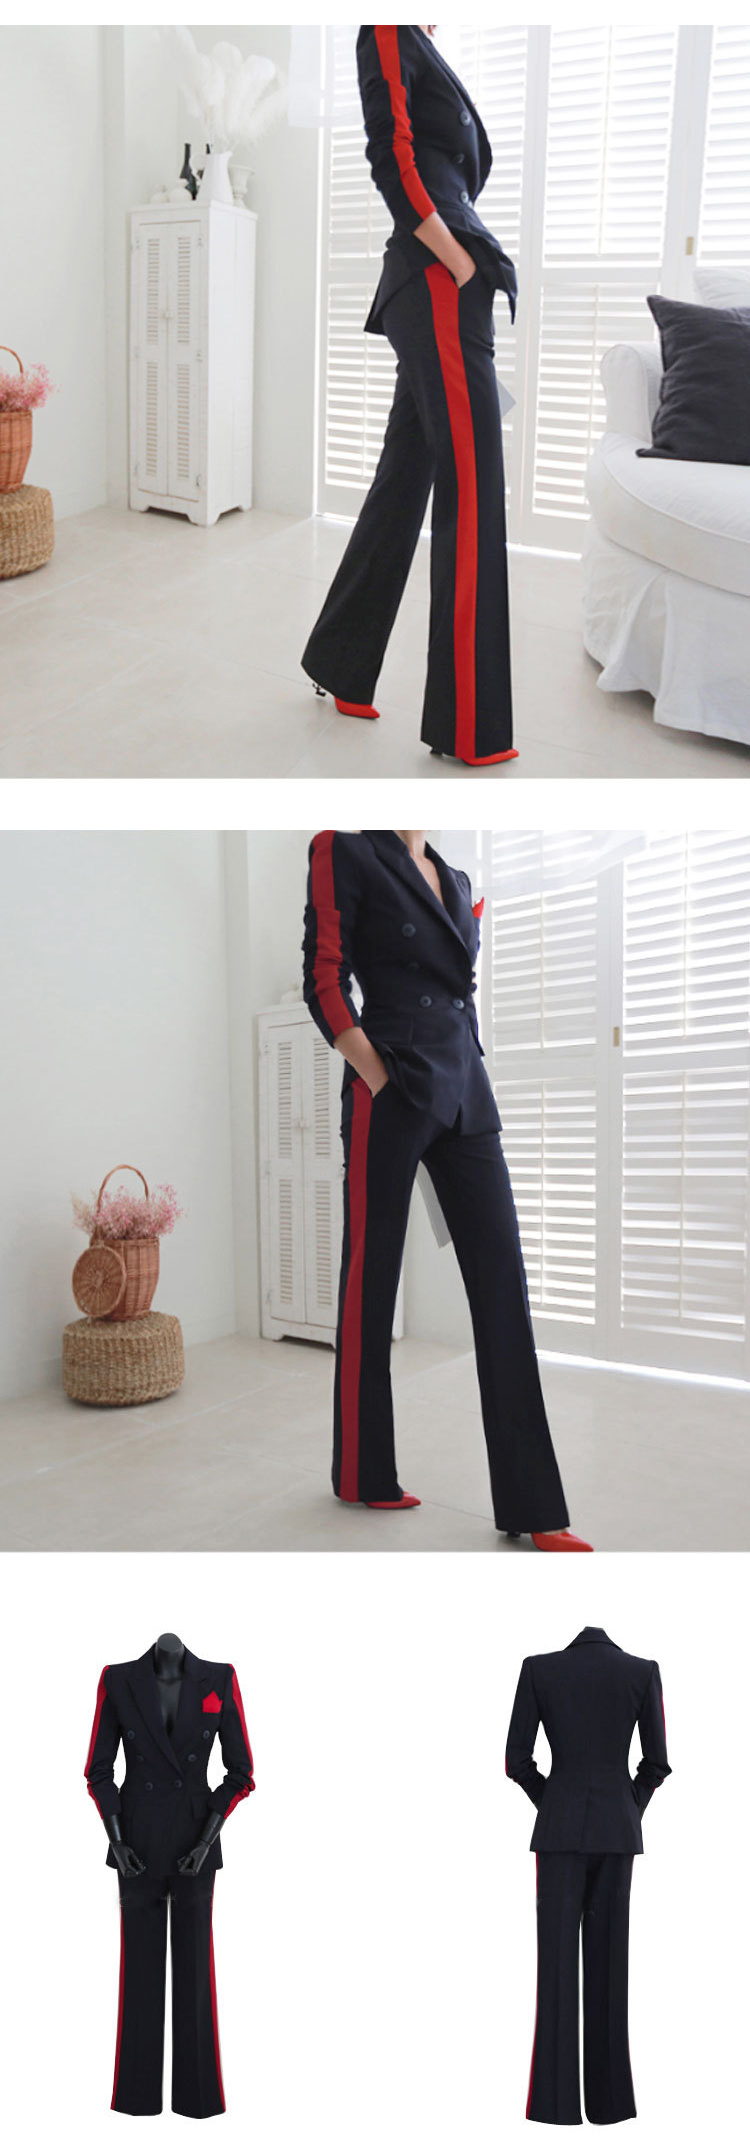 New arrival women high quality temperament fashion wild suit slim pant comfortable thick warm trend outdoor office pant suits 8